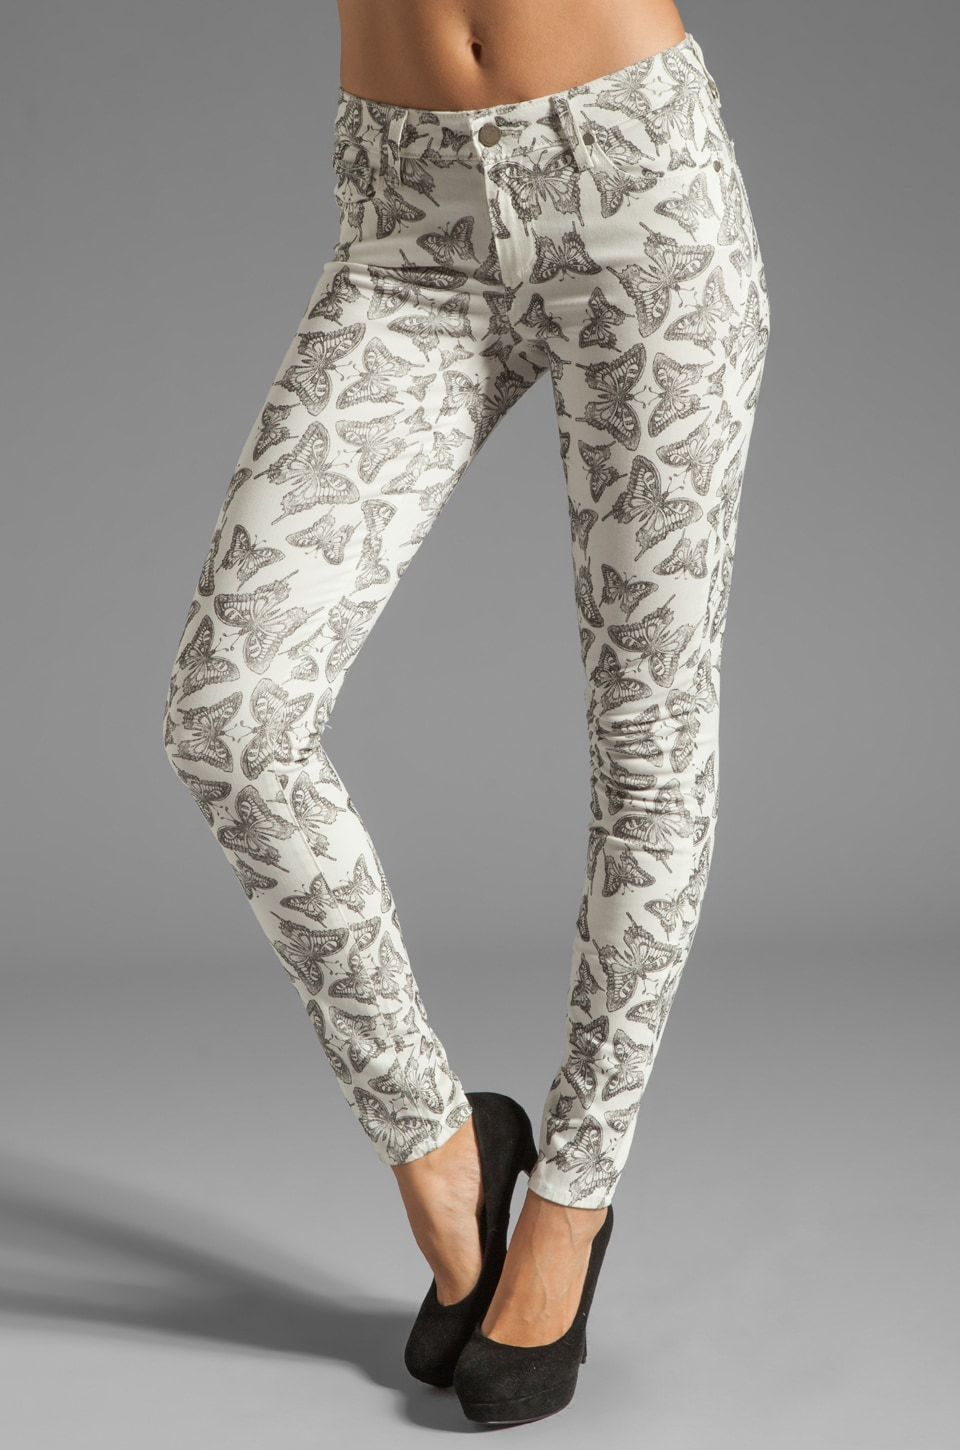 PAIGE Denim Verdugo Ultra Skinny in White/Black